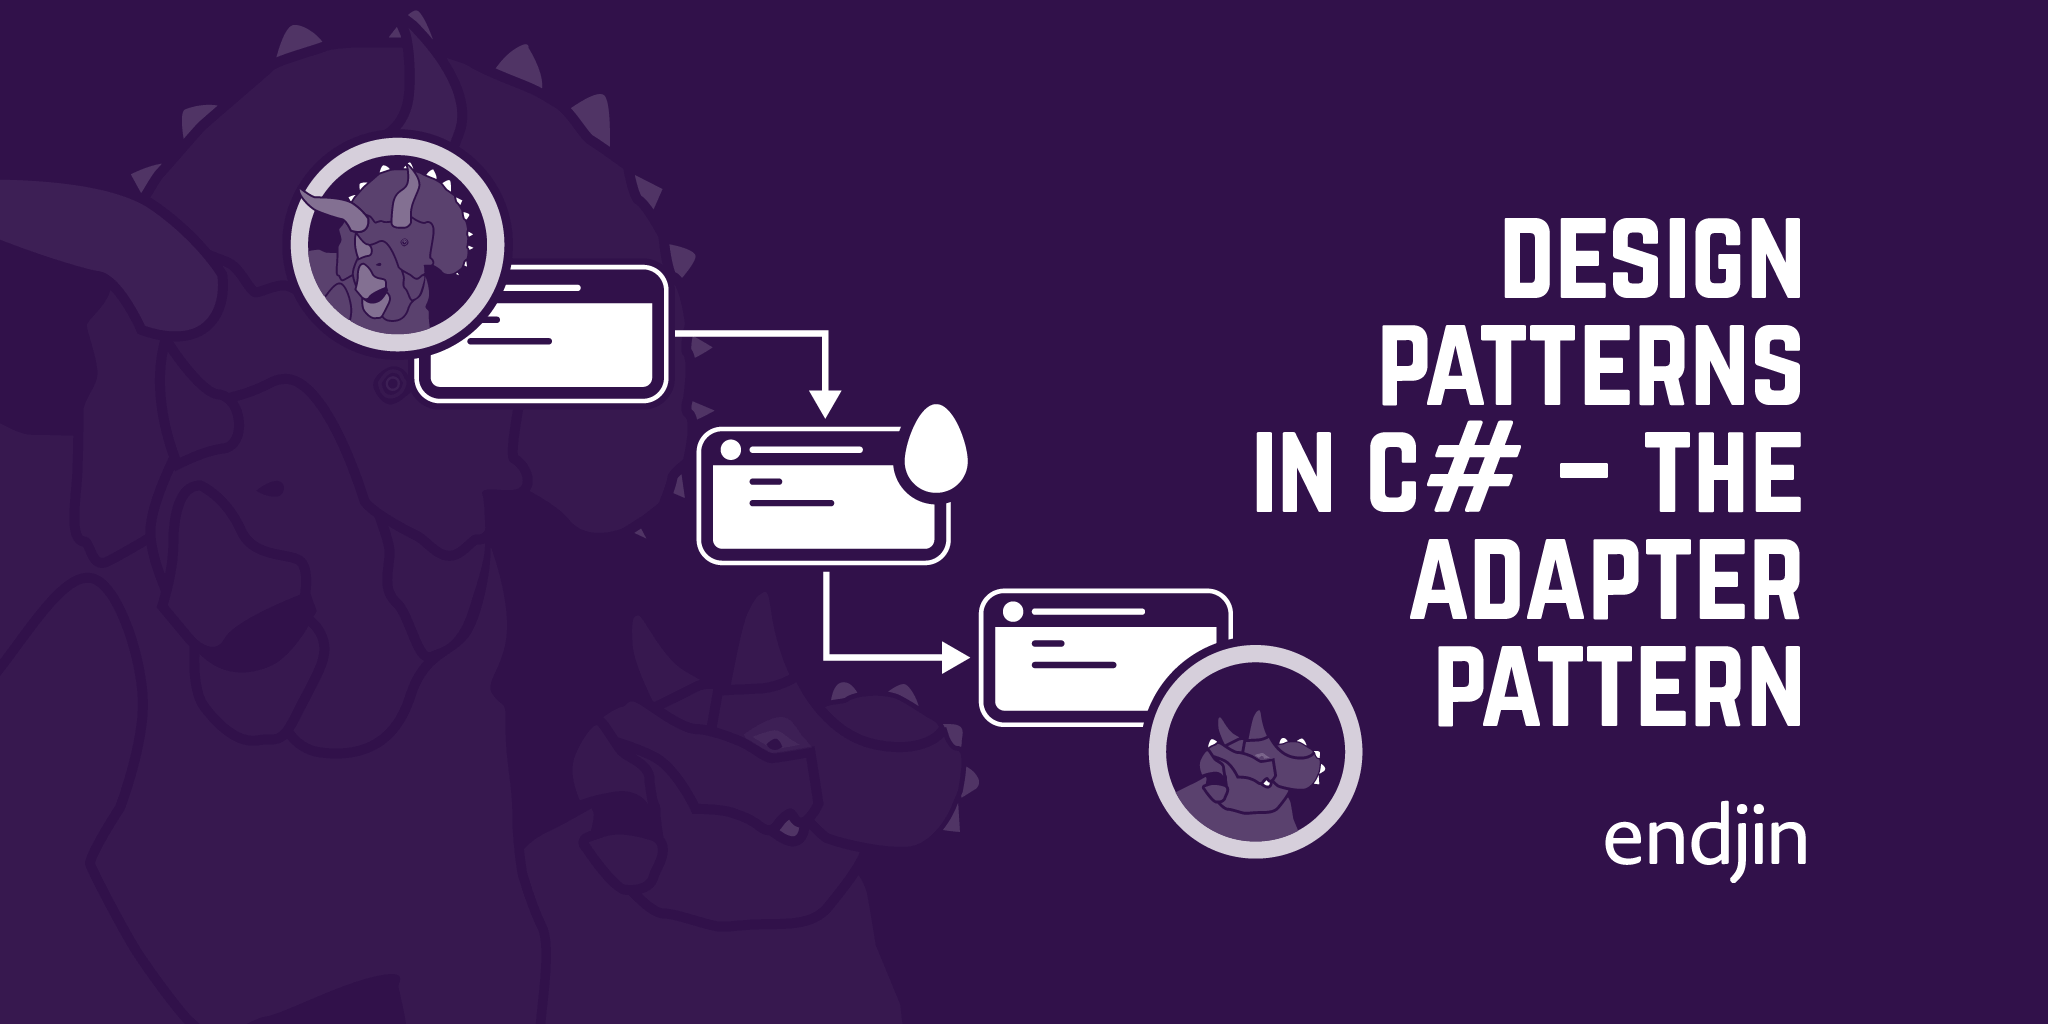 Design patterns in C# - The Adapter Pattern